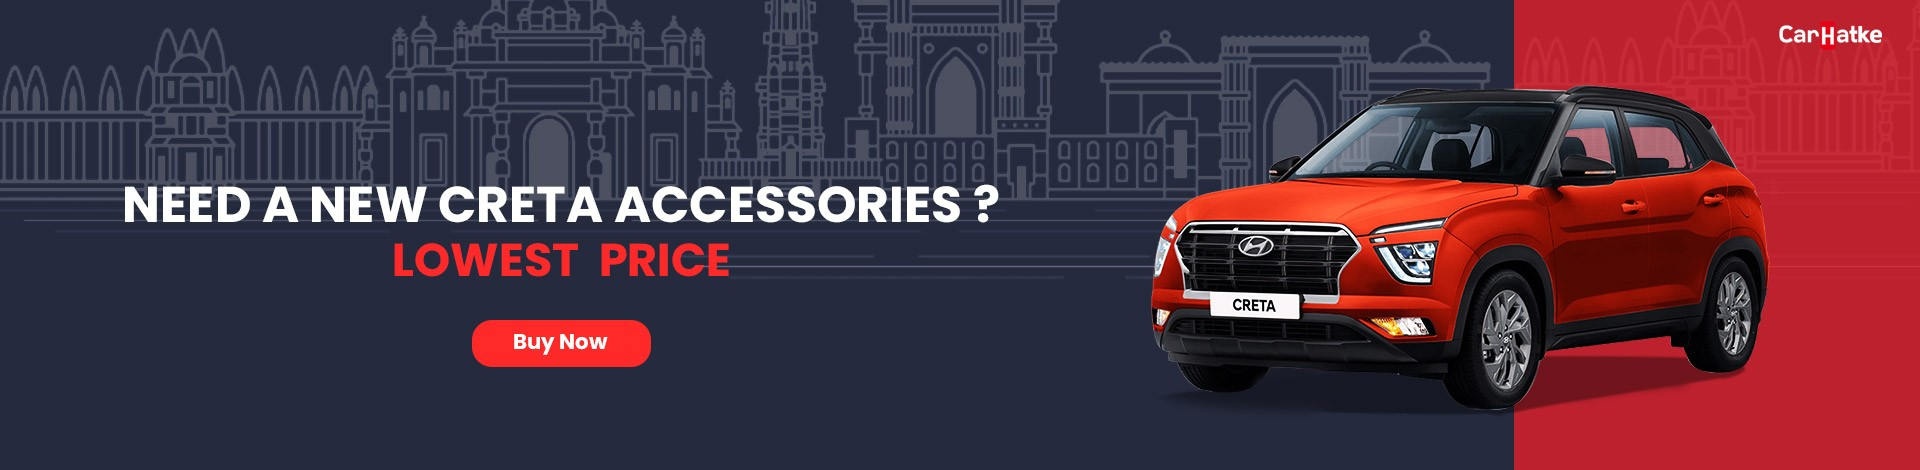 Hyundai Creta  Accessories Banner